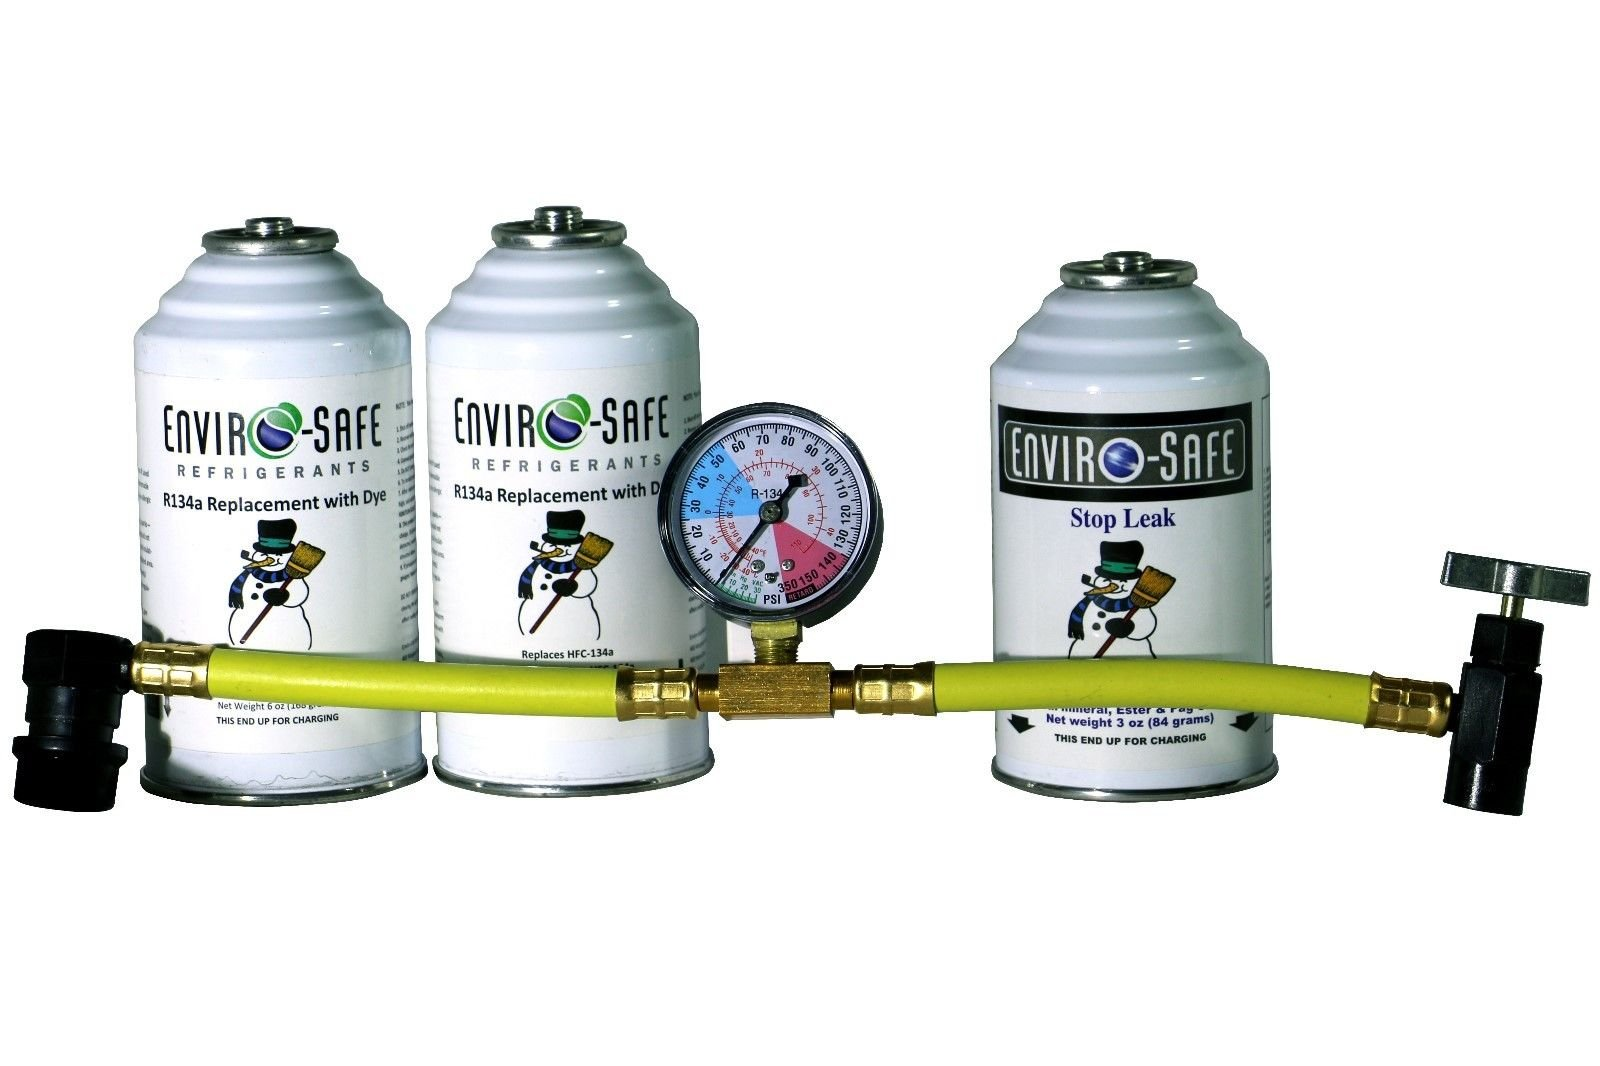 Enviro-Safe 1 Stop Leak and 2 R134a Replacement with Dye Kit with R134 Tap Gauge #RSG-4